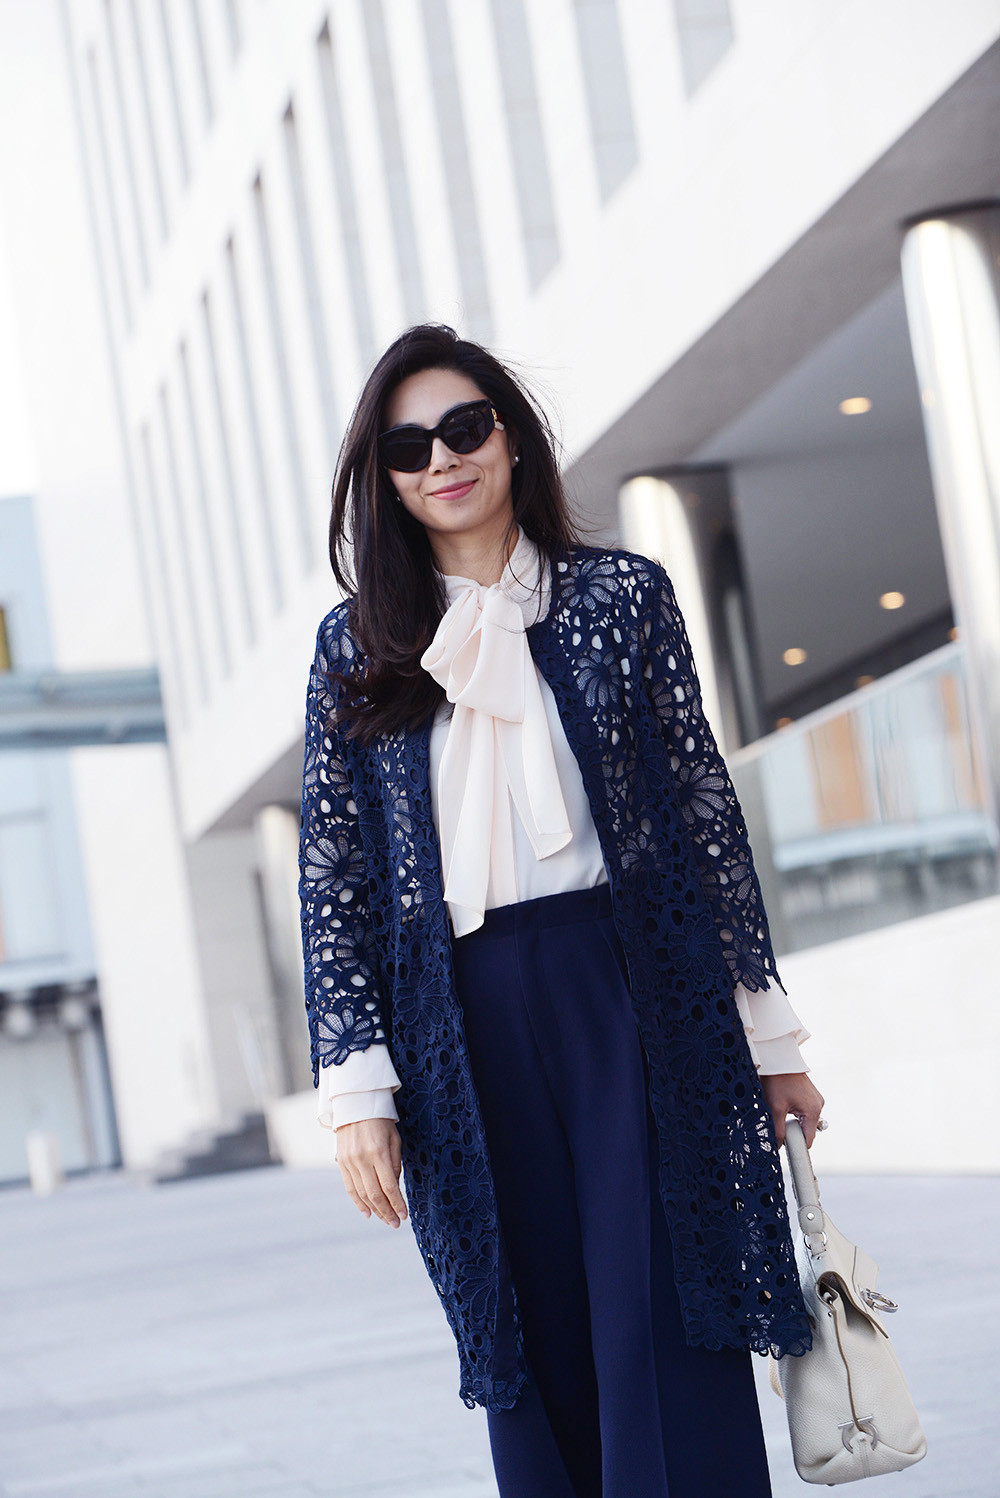 Business Formal woman outfit with a navy floral lace coat and a navy pants from Roland Mouret.